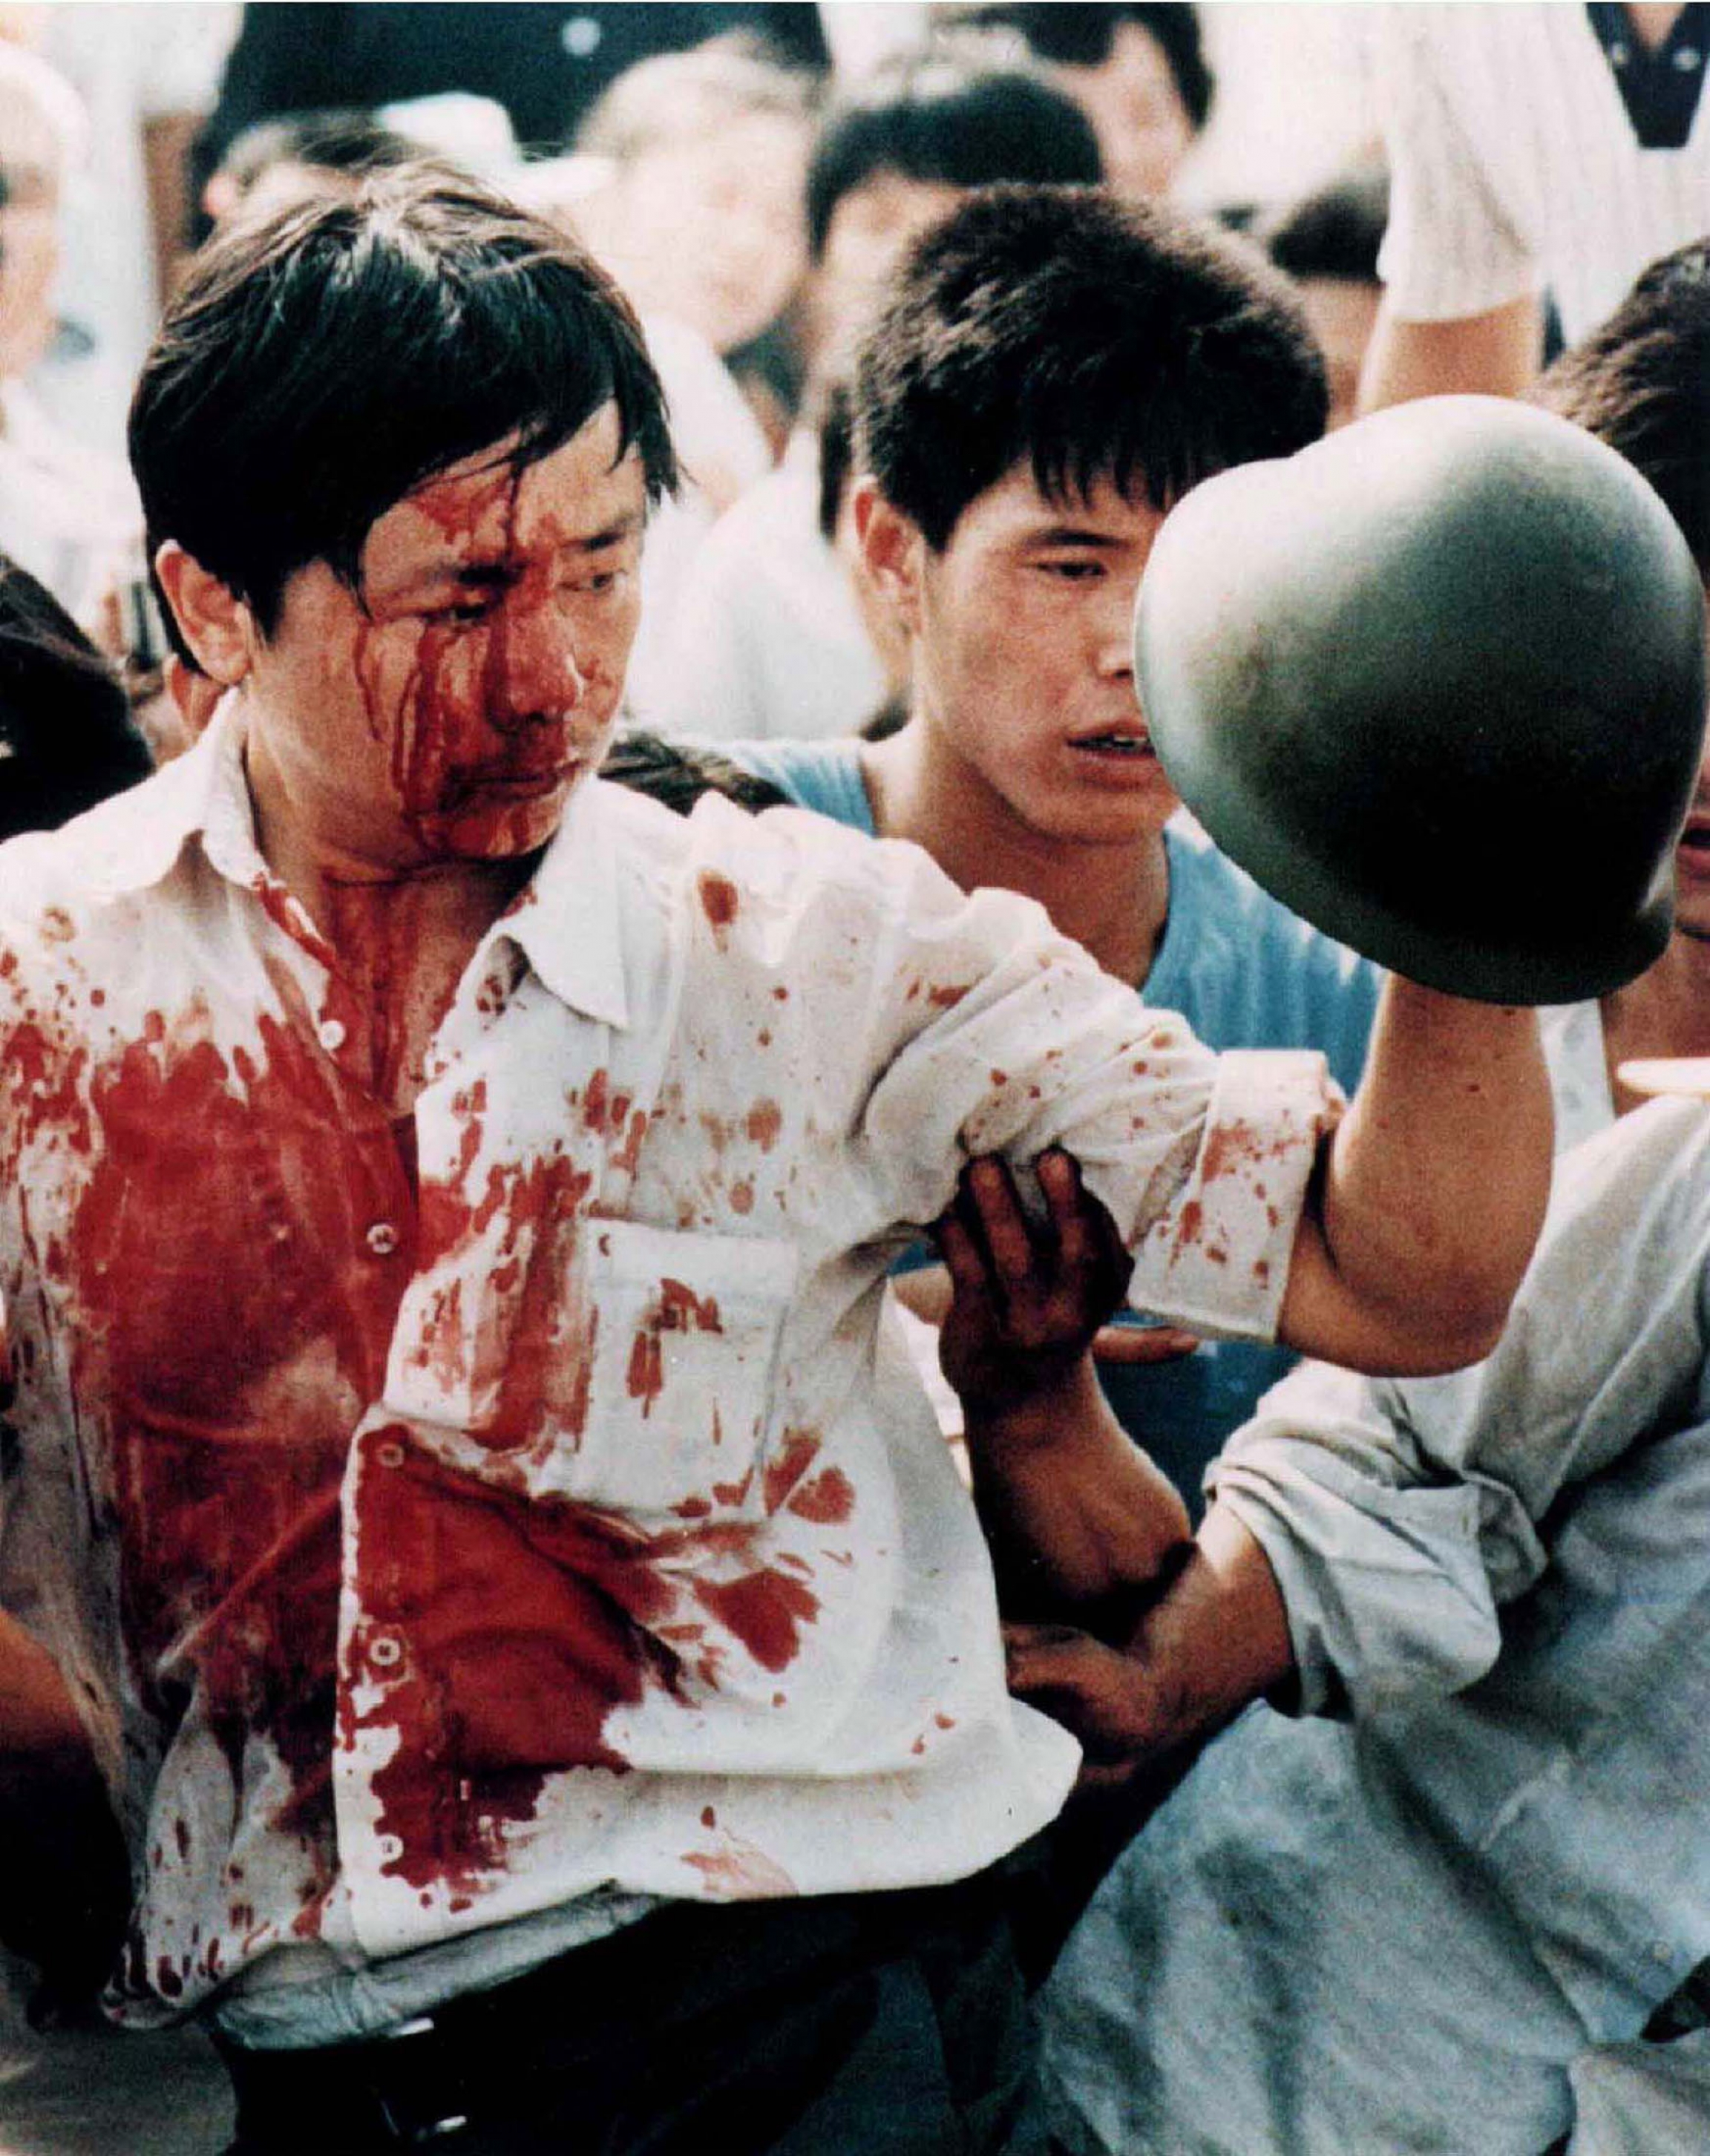 A man is covered in blood while holding up a military helmet.